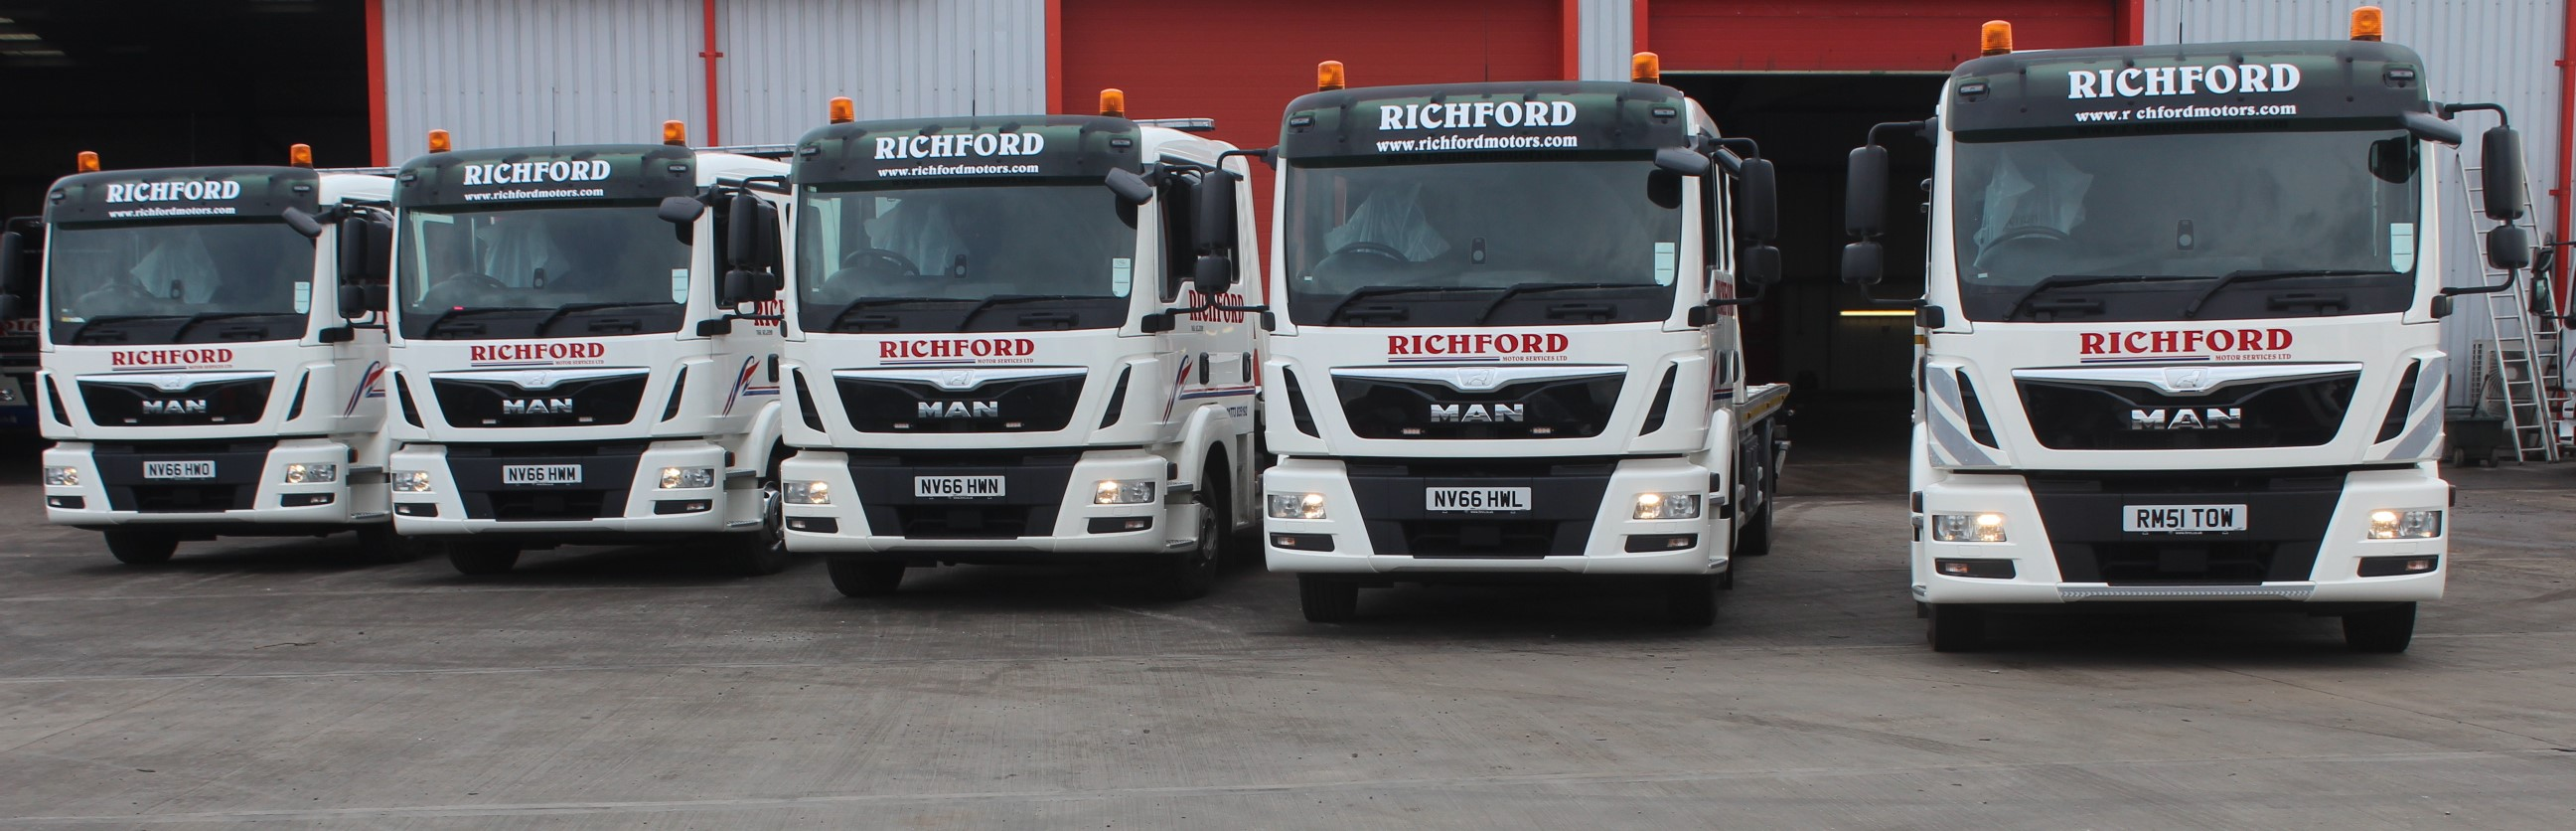 Boniface Deliver More New Vehicles for Richford Motor Services